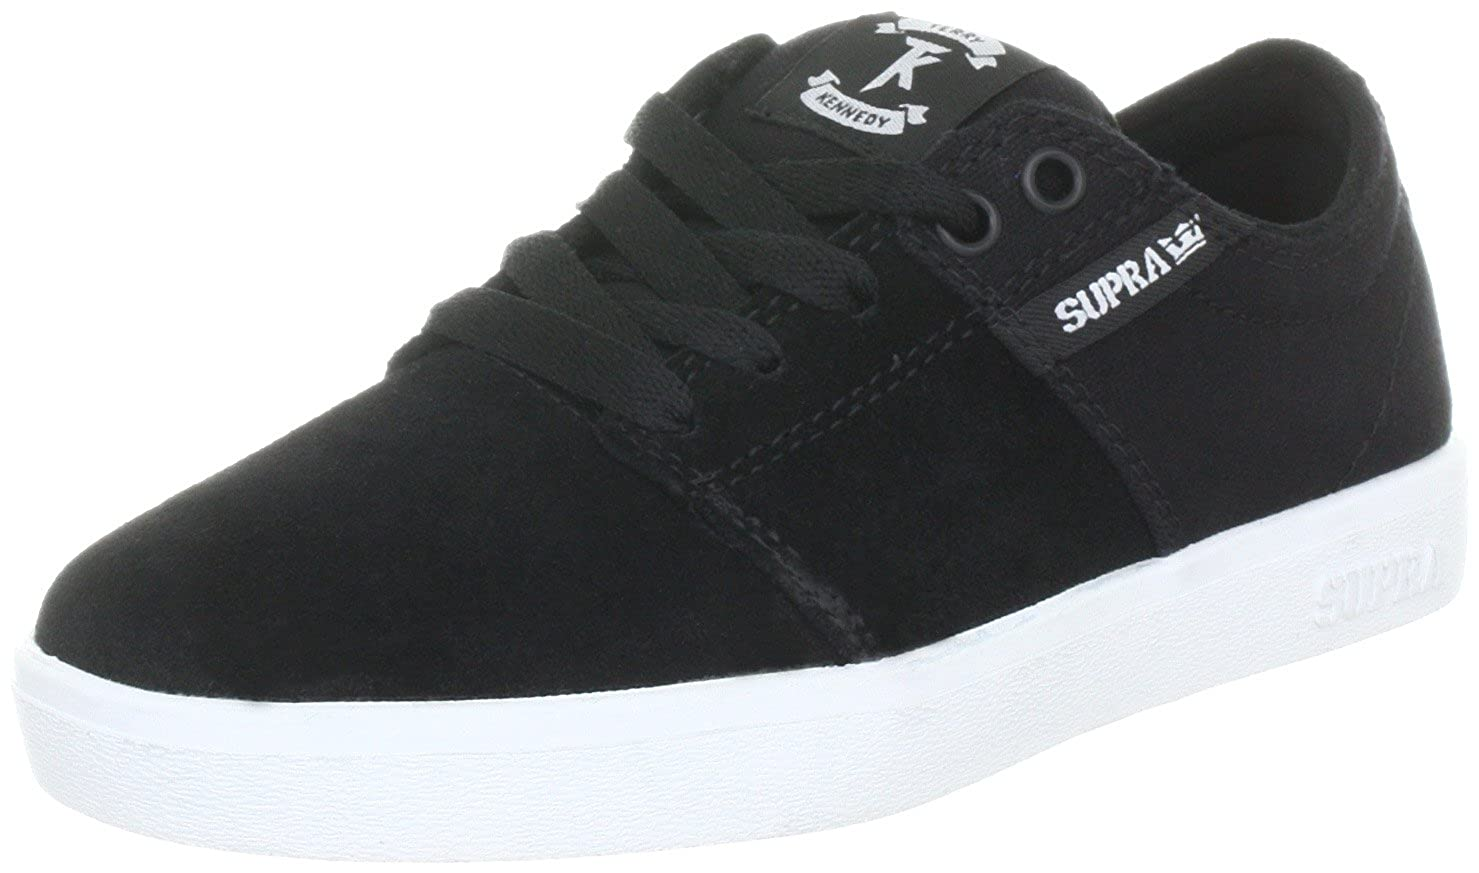 f36e1b18774a ... Amazon.com Supra TK Low Stacks Skate Shoe - Men s Fashion Sneakers   Falcon Black ...